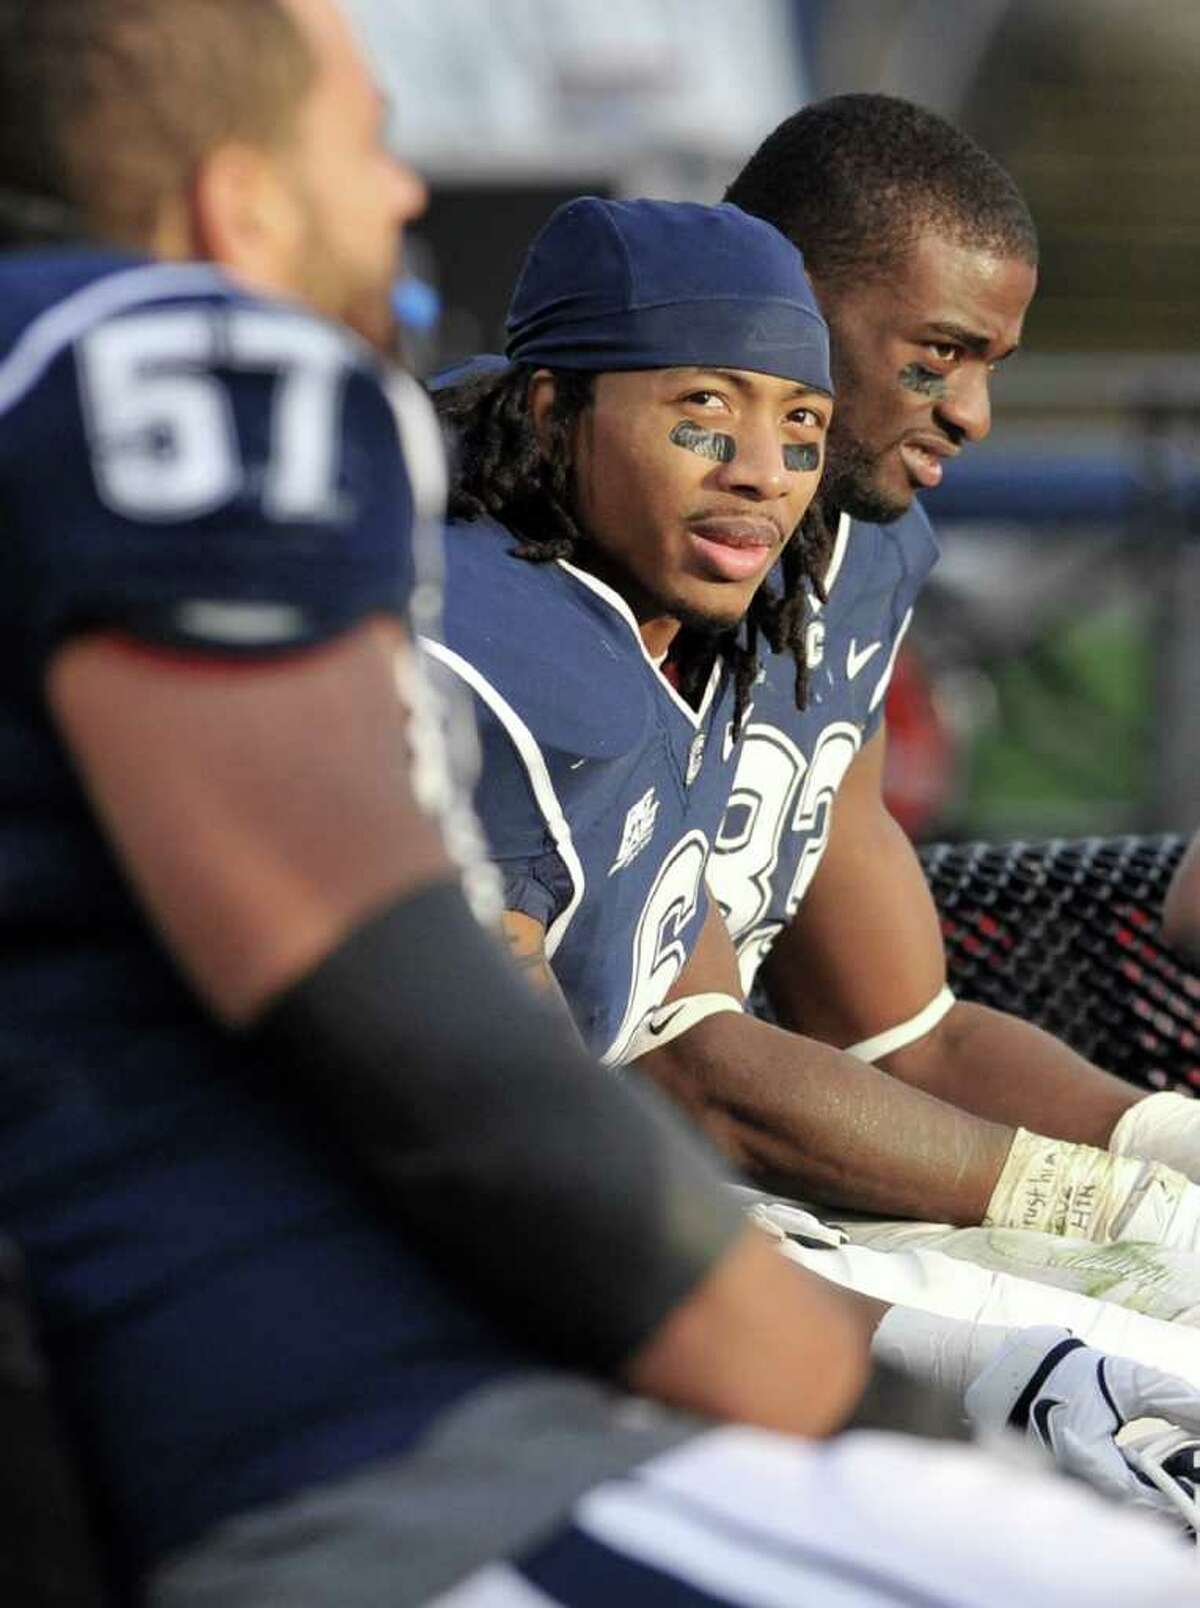 Connecticut's Kashif Moore, center, looks toward the scoreboard in the fourth quarter of an NCAA college football game at Rentschler Field in East Hartford, Conn., Saturday, Nov. 19, 2011. Louisville beat Connecticut 34-20. (AP Photo/Jessica Hill)